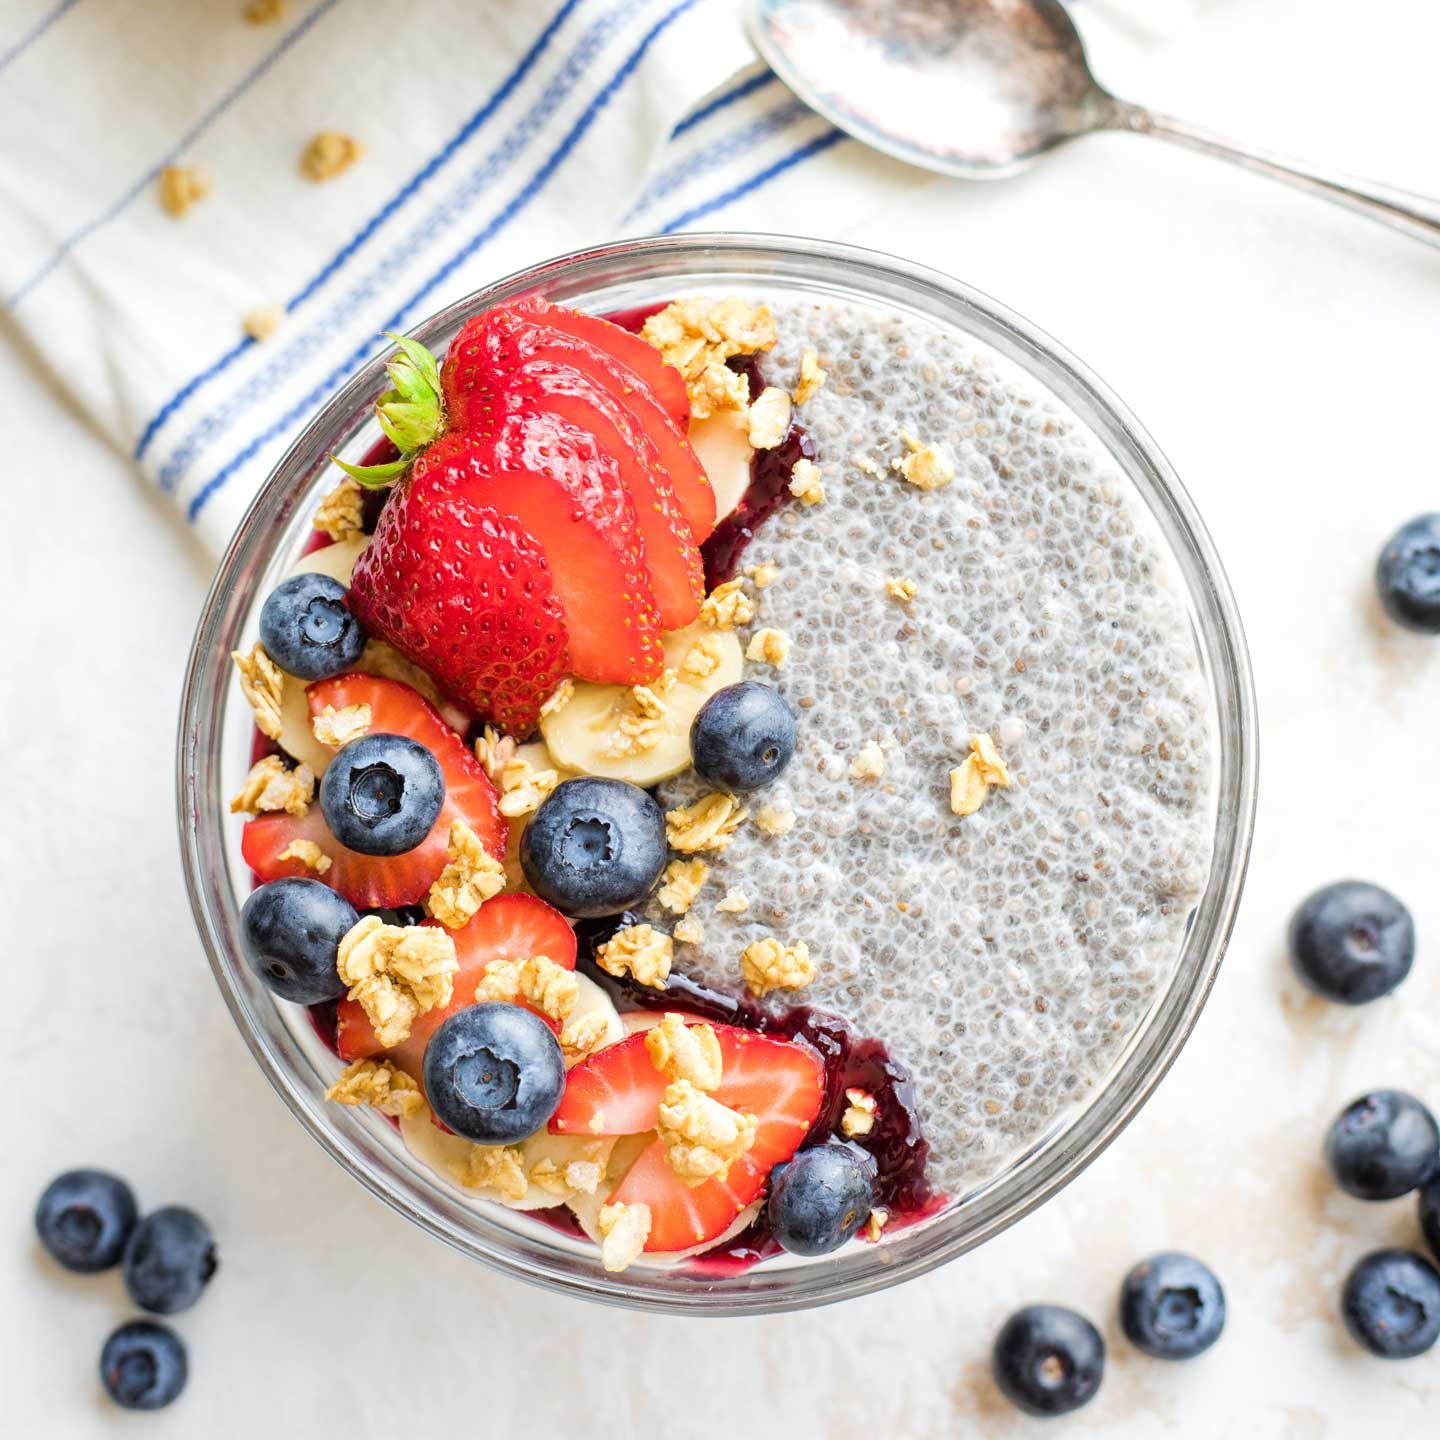 bowl of Coconut Milk Chia Pudding topped with berries and granola with spoon in background